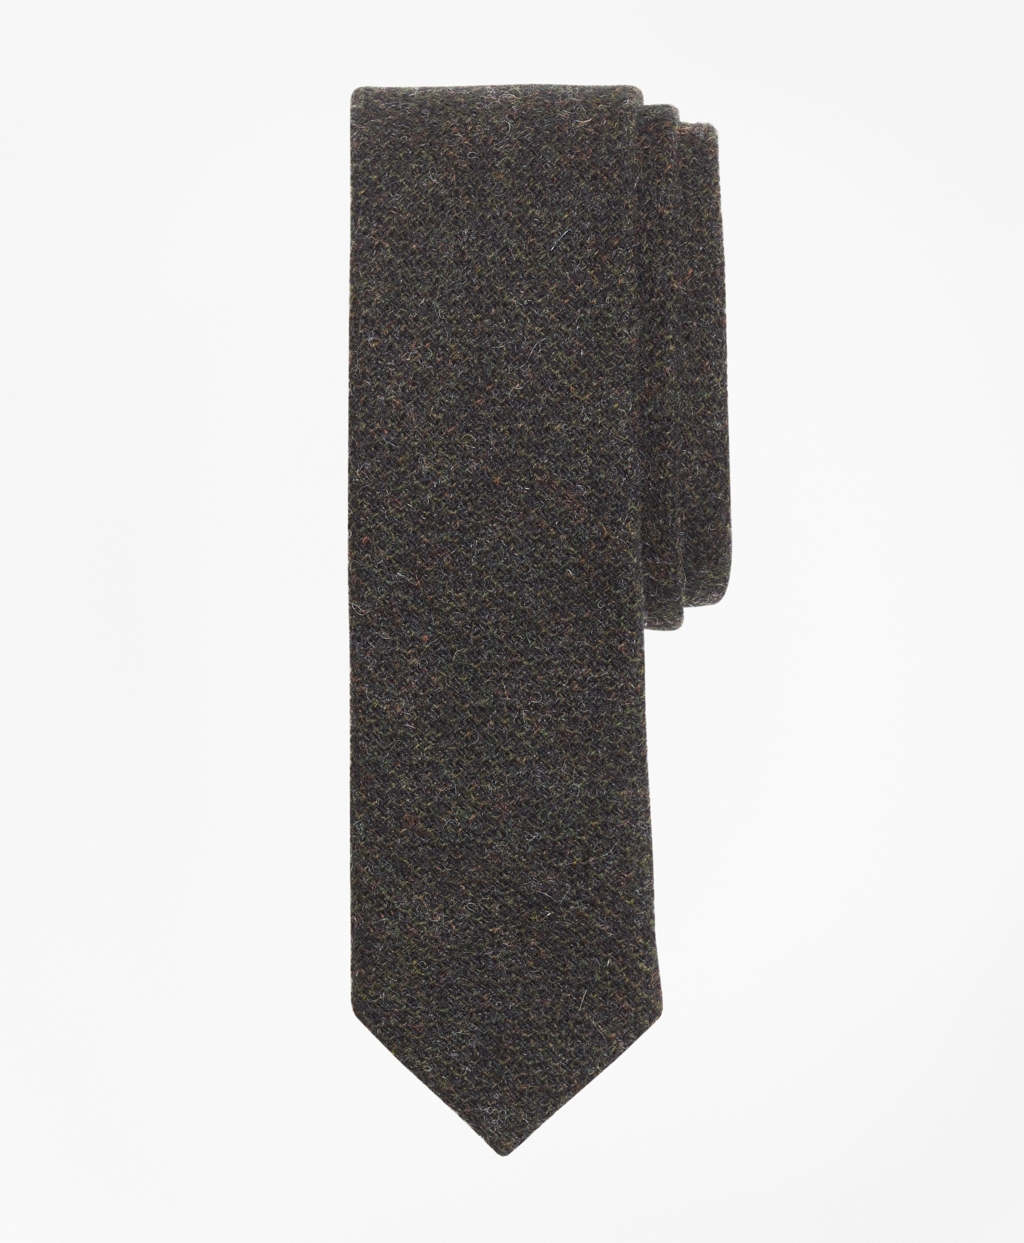 Men's Vintage Style Clothing Brooks Brothers Mens Textured Wool Tweed Tie $49.50 AT vintagedancer.com